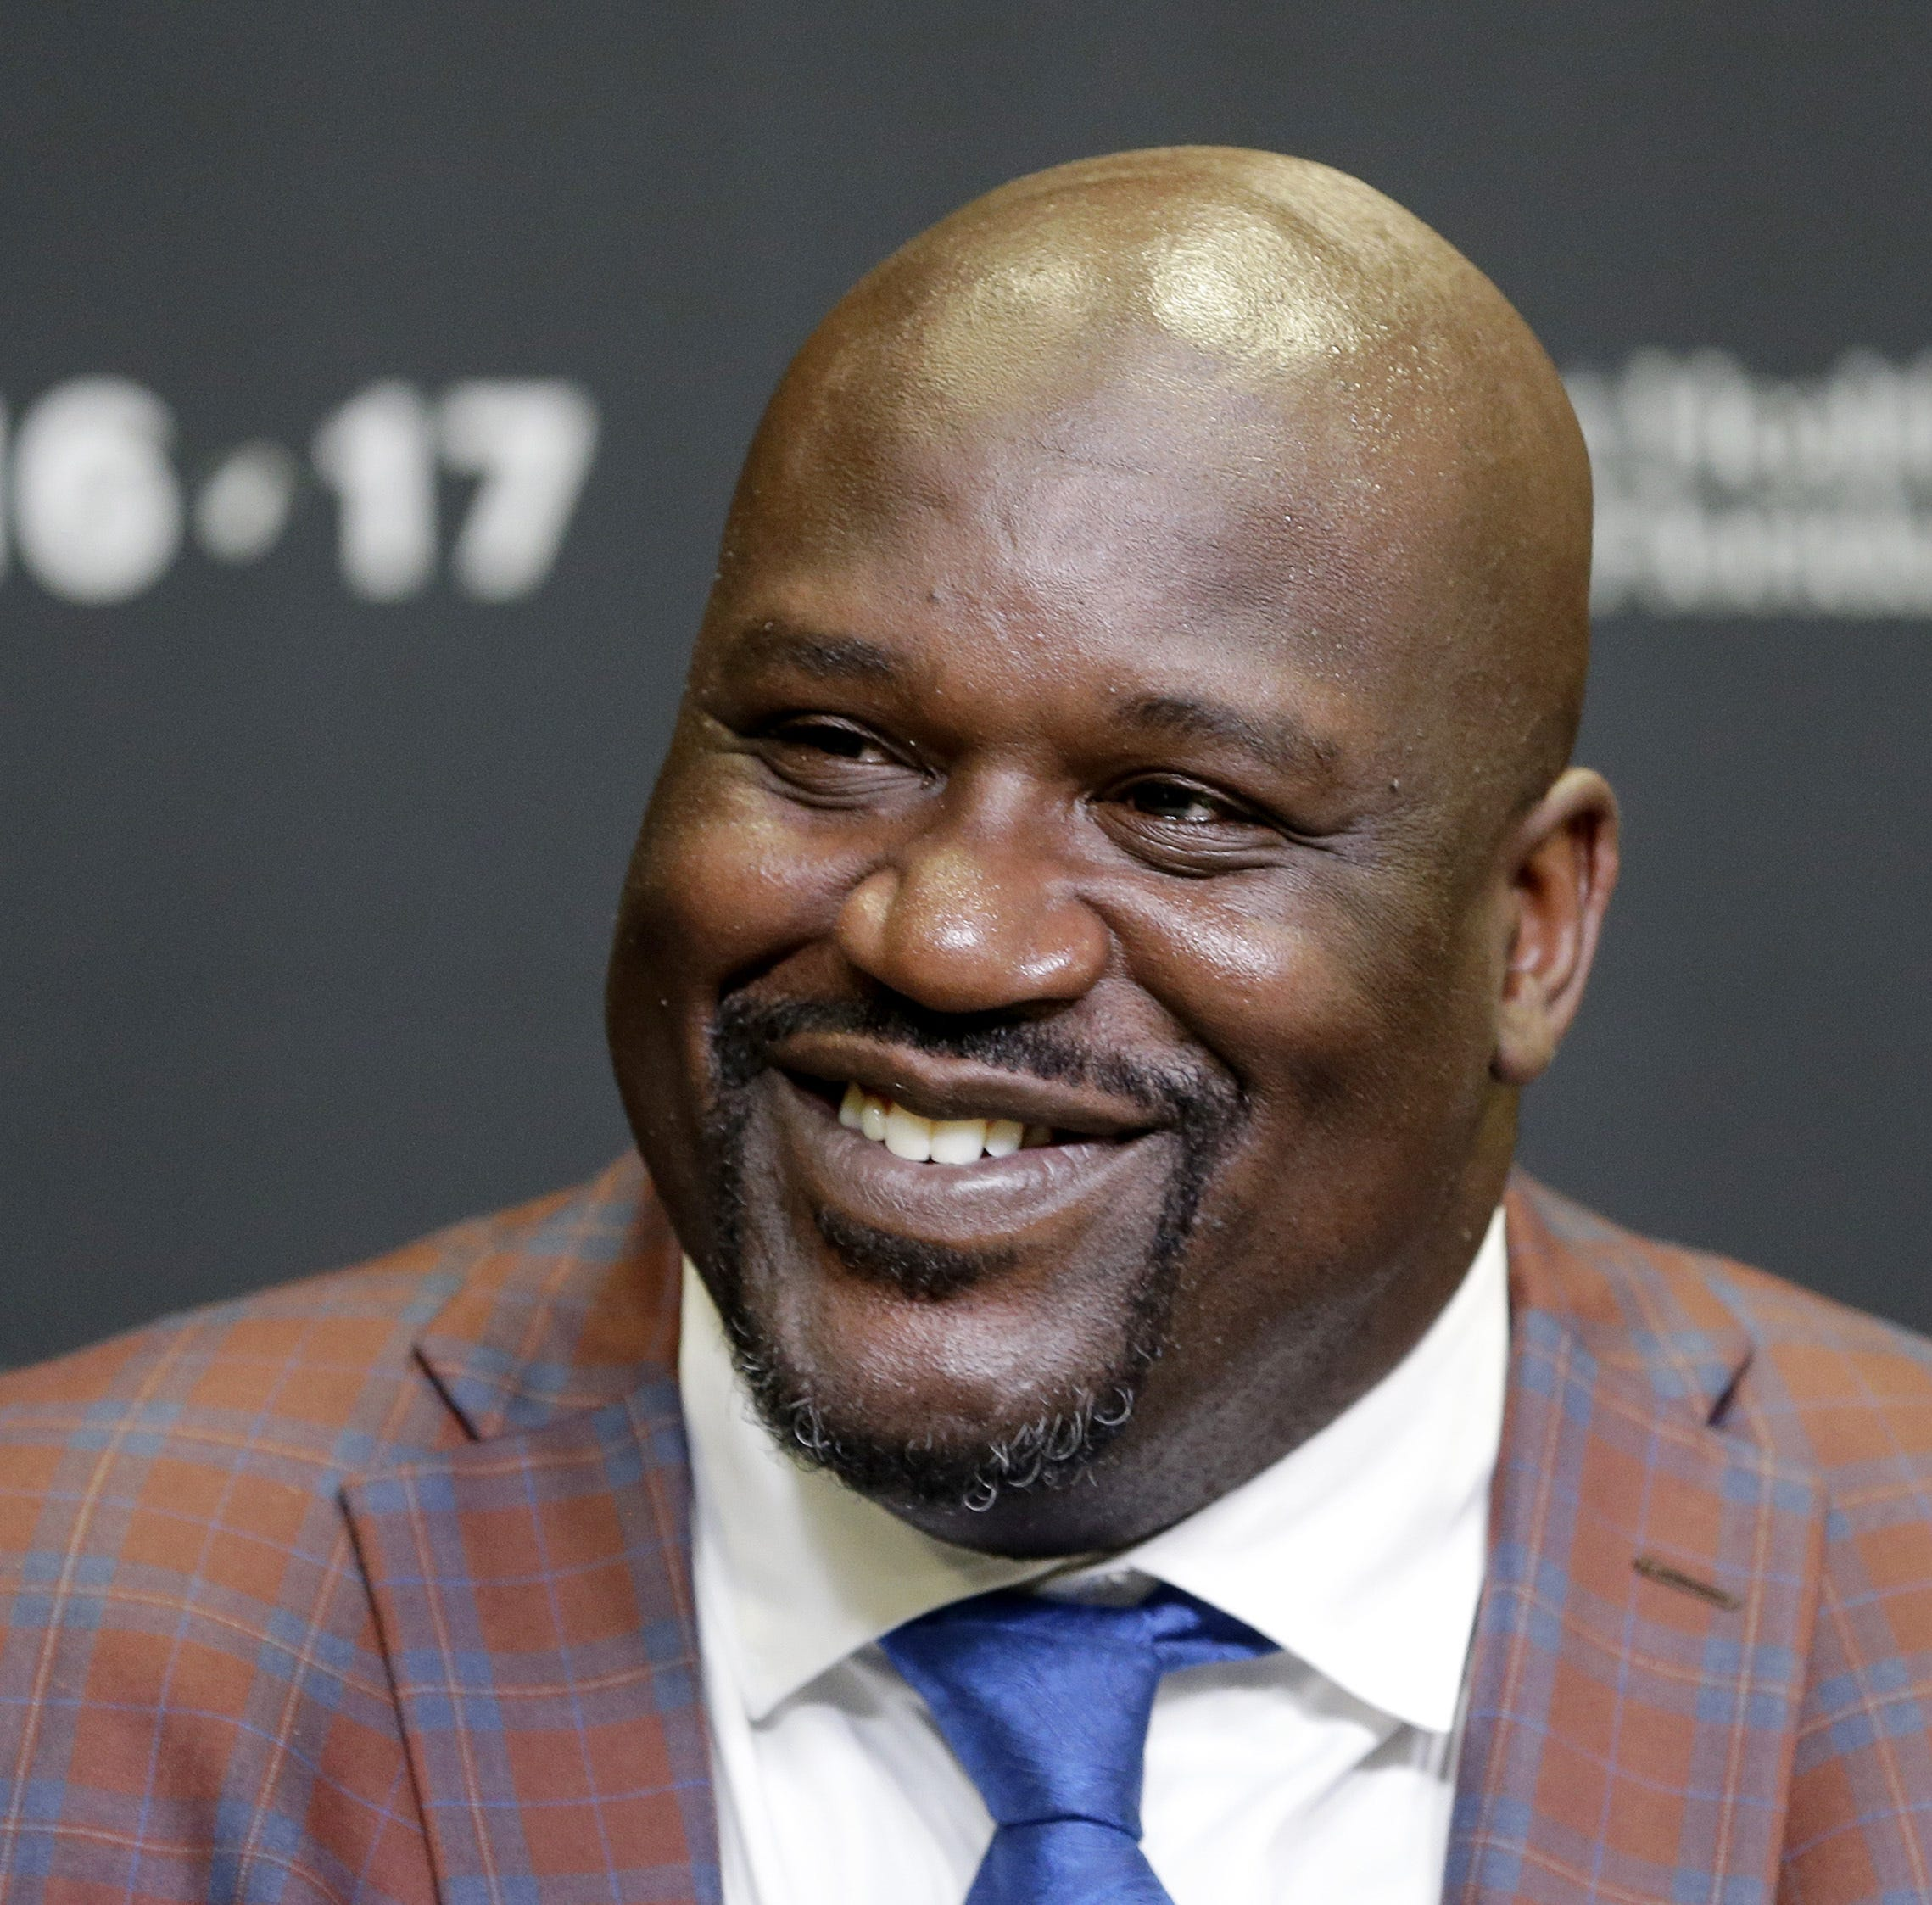 Shaquille O'Neal, NJ native, will be the new face of Papa John's Pizza